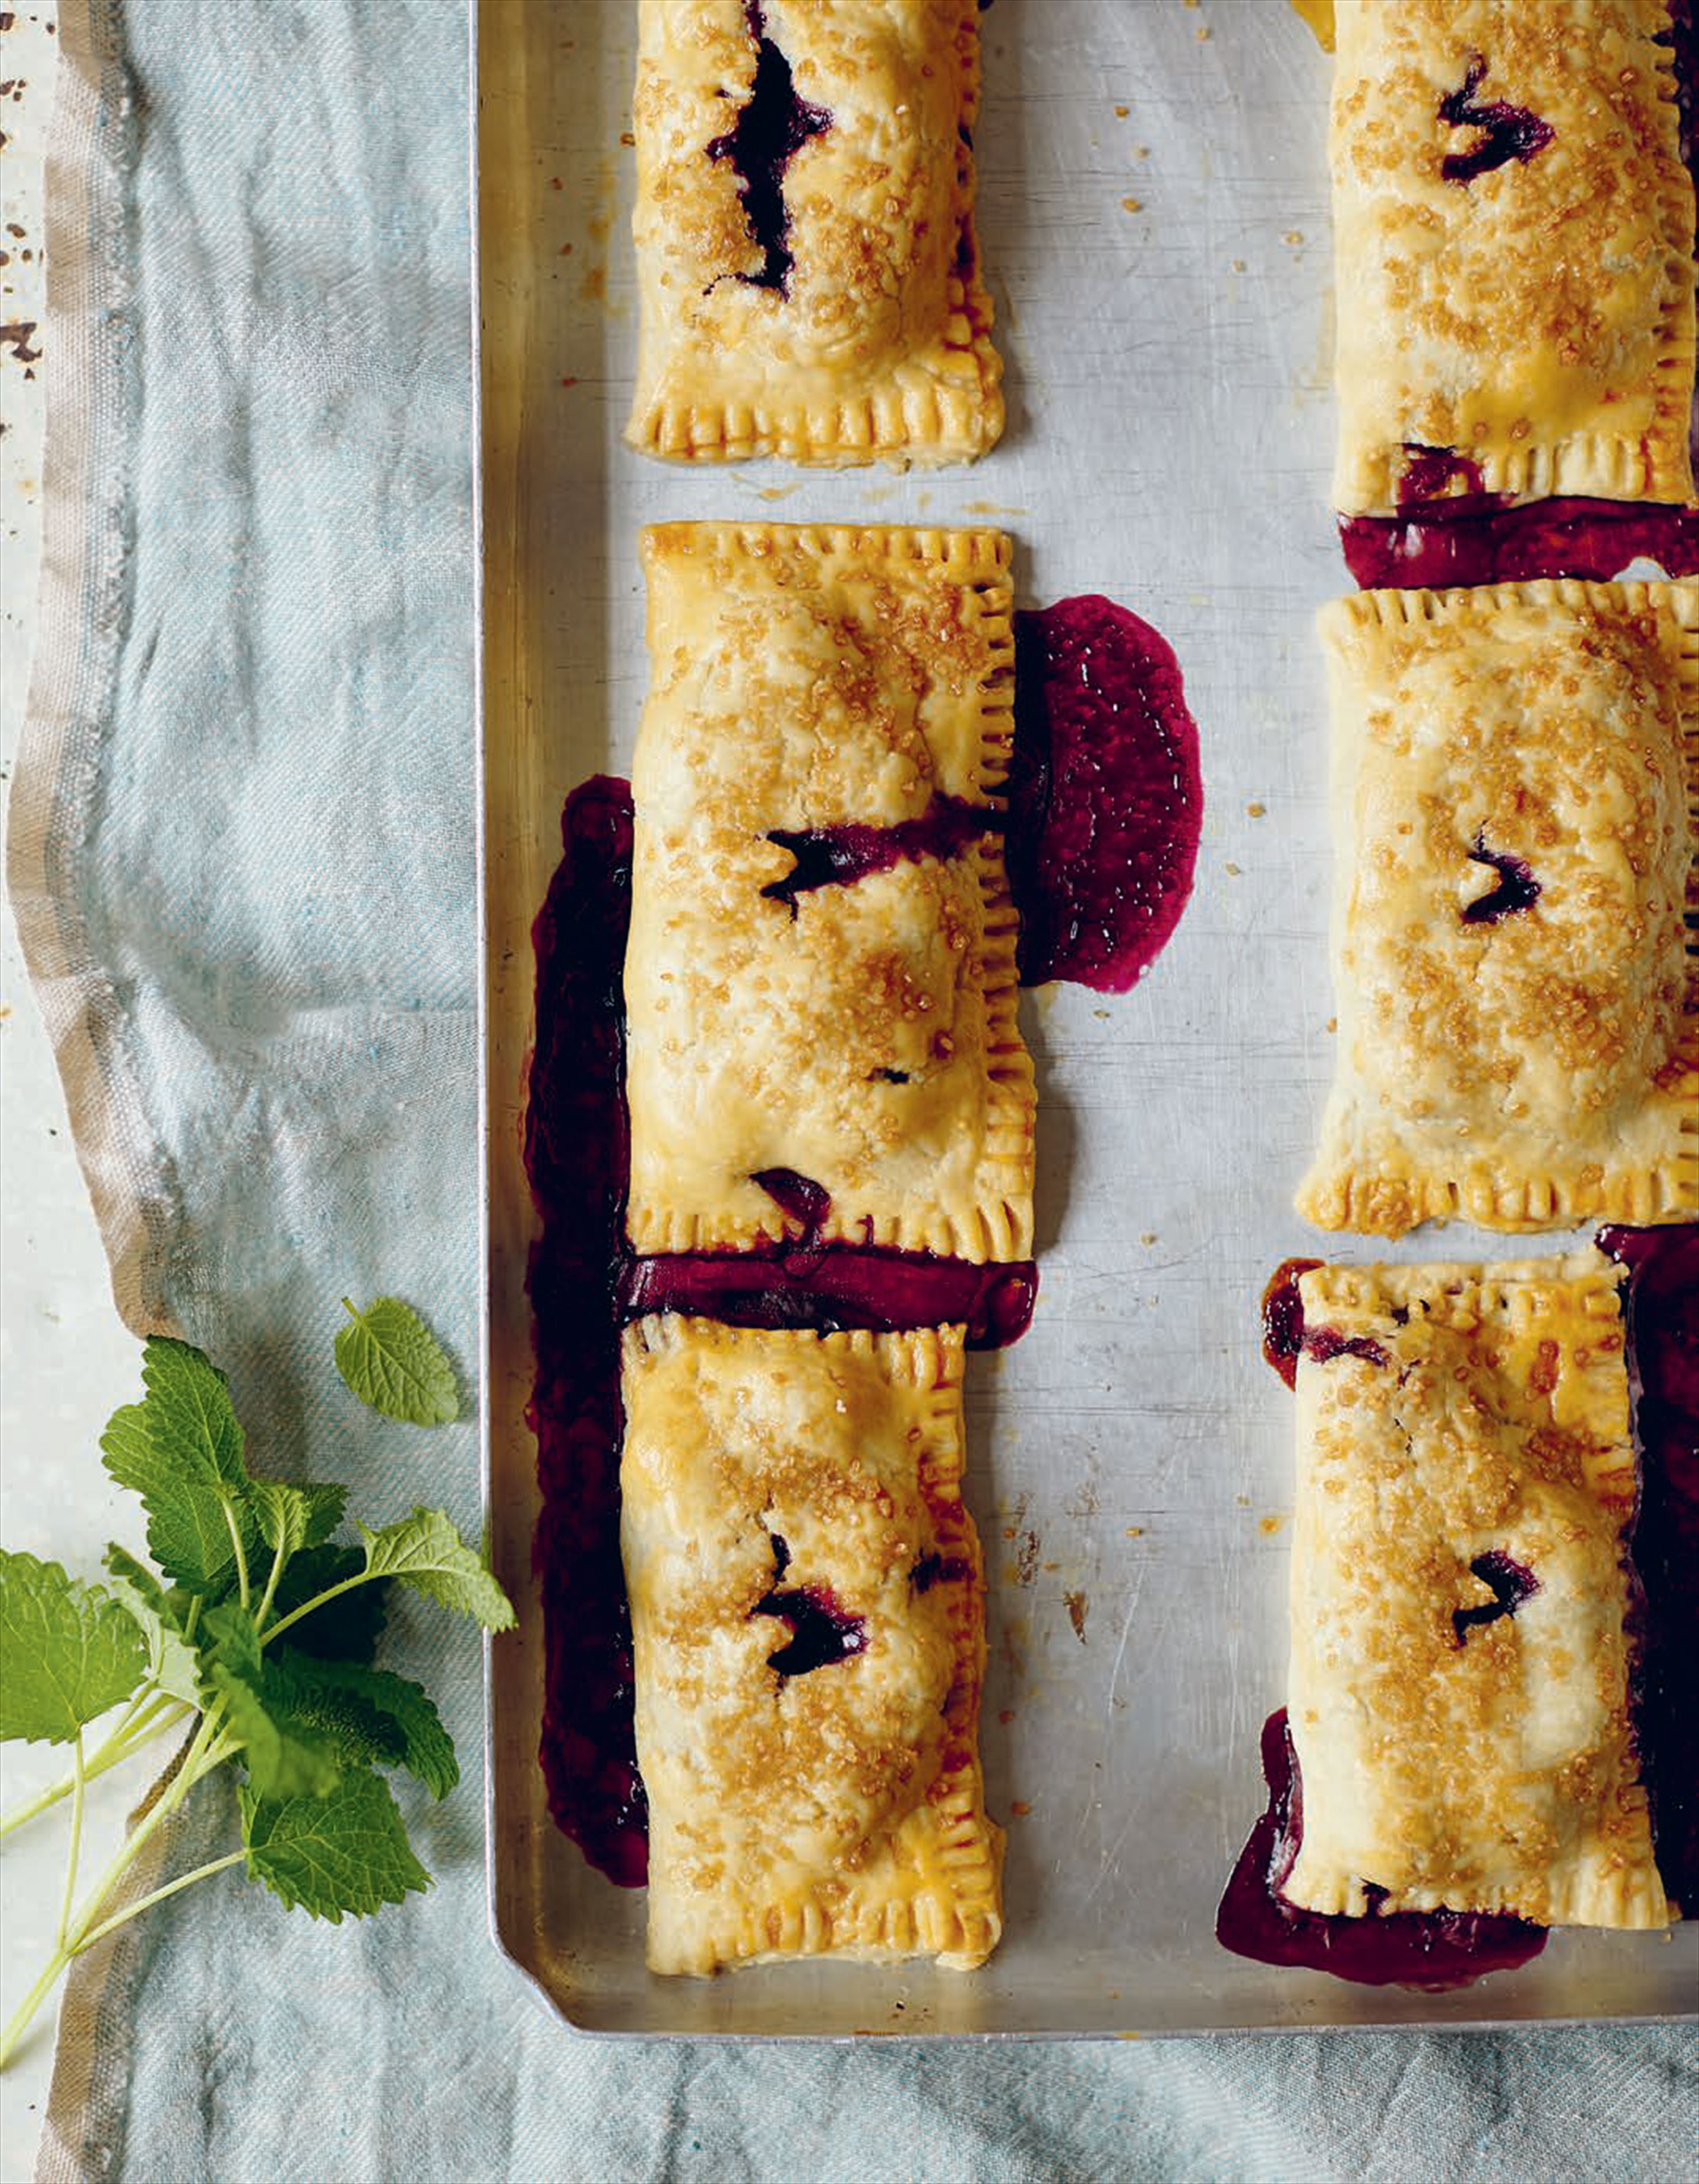 Blueberry hand pies with demerara sugar & lemon balm